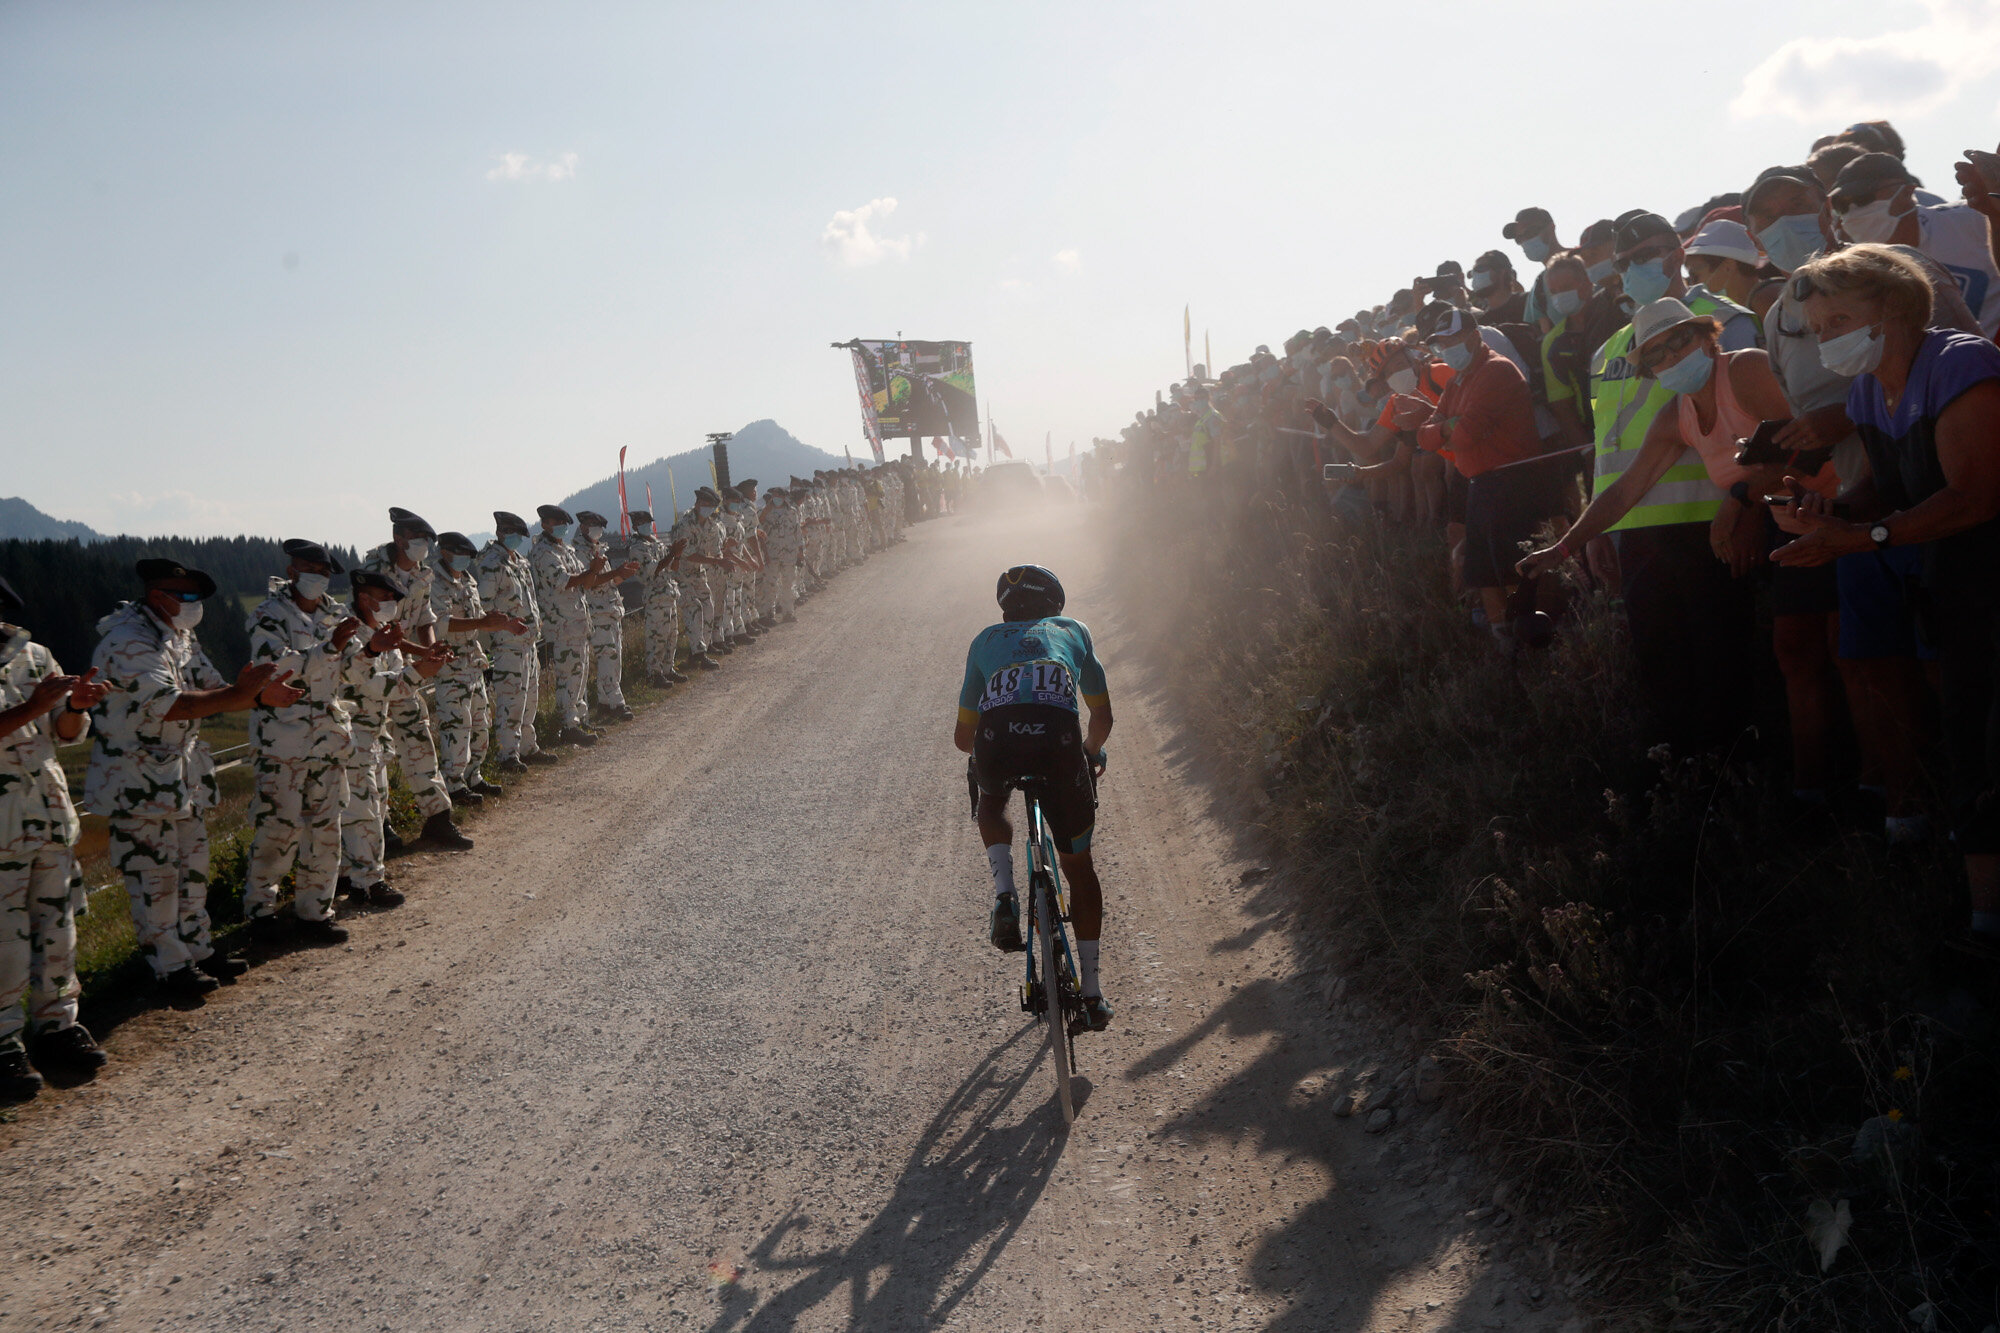 Colombia's Harold Tejada climbs Plateau des Glieres during the stage 18 of the Tour de France cycling race over 175 kilometers (108.7 miles) from Meribel to La Roche-sur-Foron, France, on Sept. 17, 2020. (AP Photo/Thibault Camus)